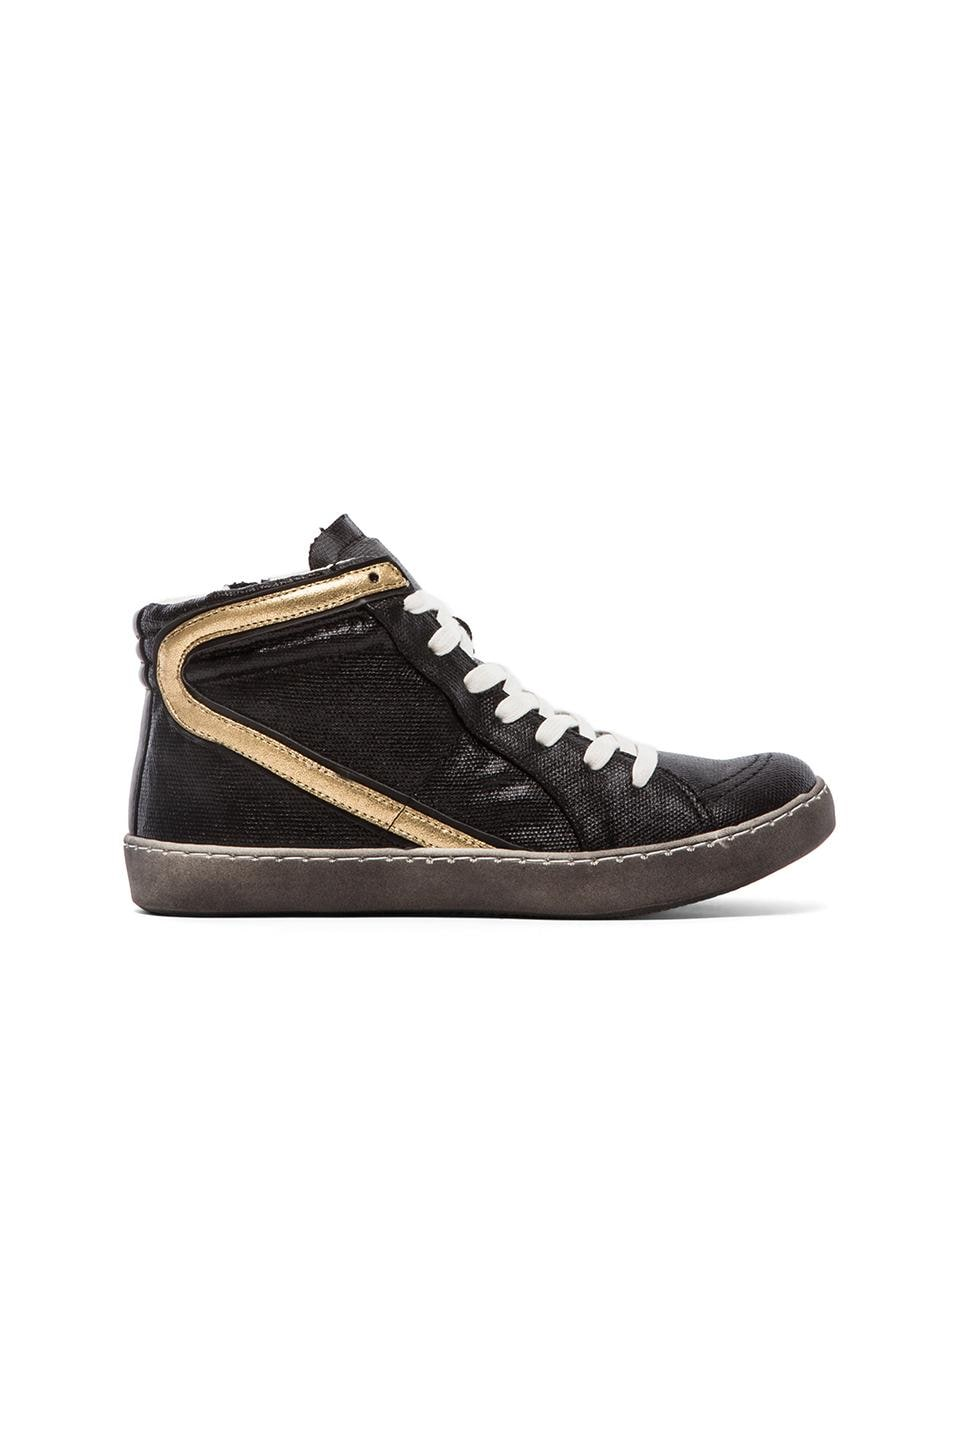 Matisse Alva Sneaker in Black